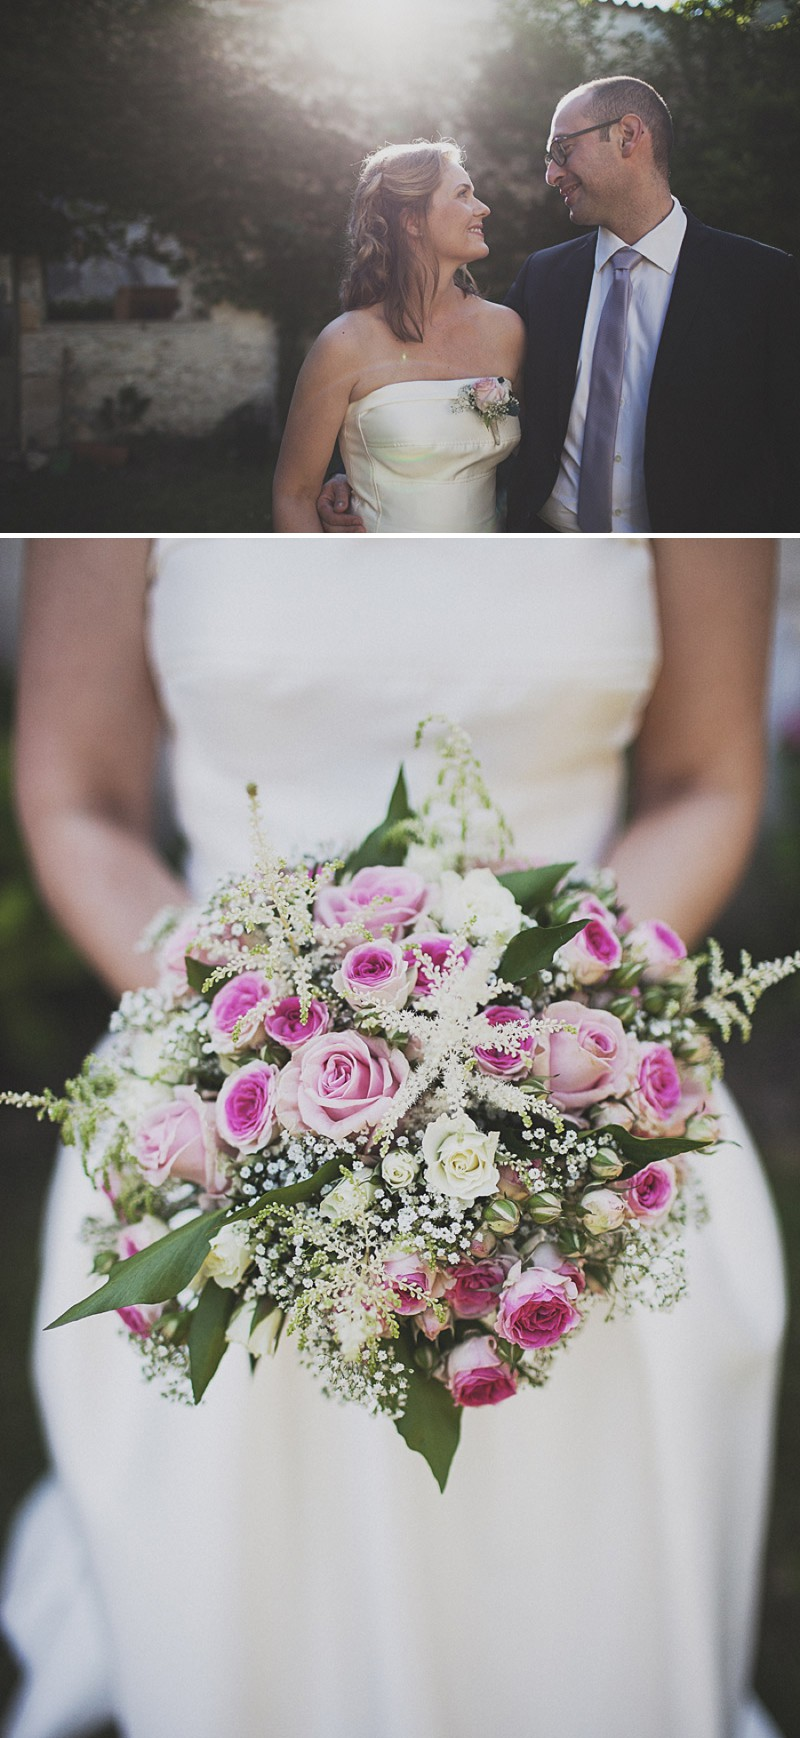 A Beautiful Rustic French Destination Wedding At Rivière de Prats In Gironde With A Rosa Clara Wedding Dress And A Pink Rose Bouquet And An Oyster And Cocktail Buffet By Anna Hardy Photography._0006